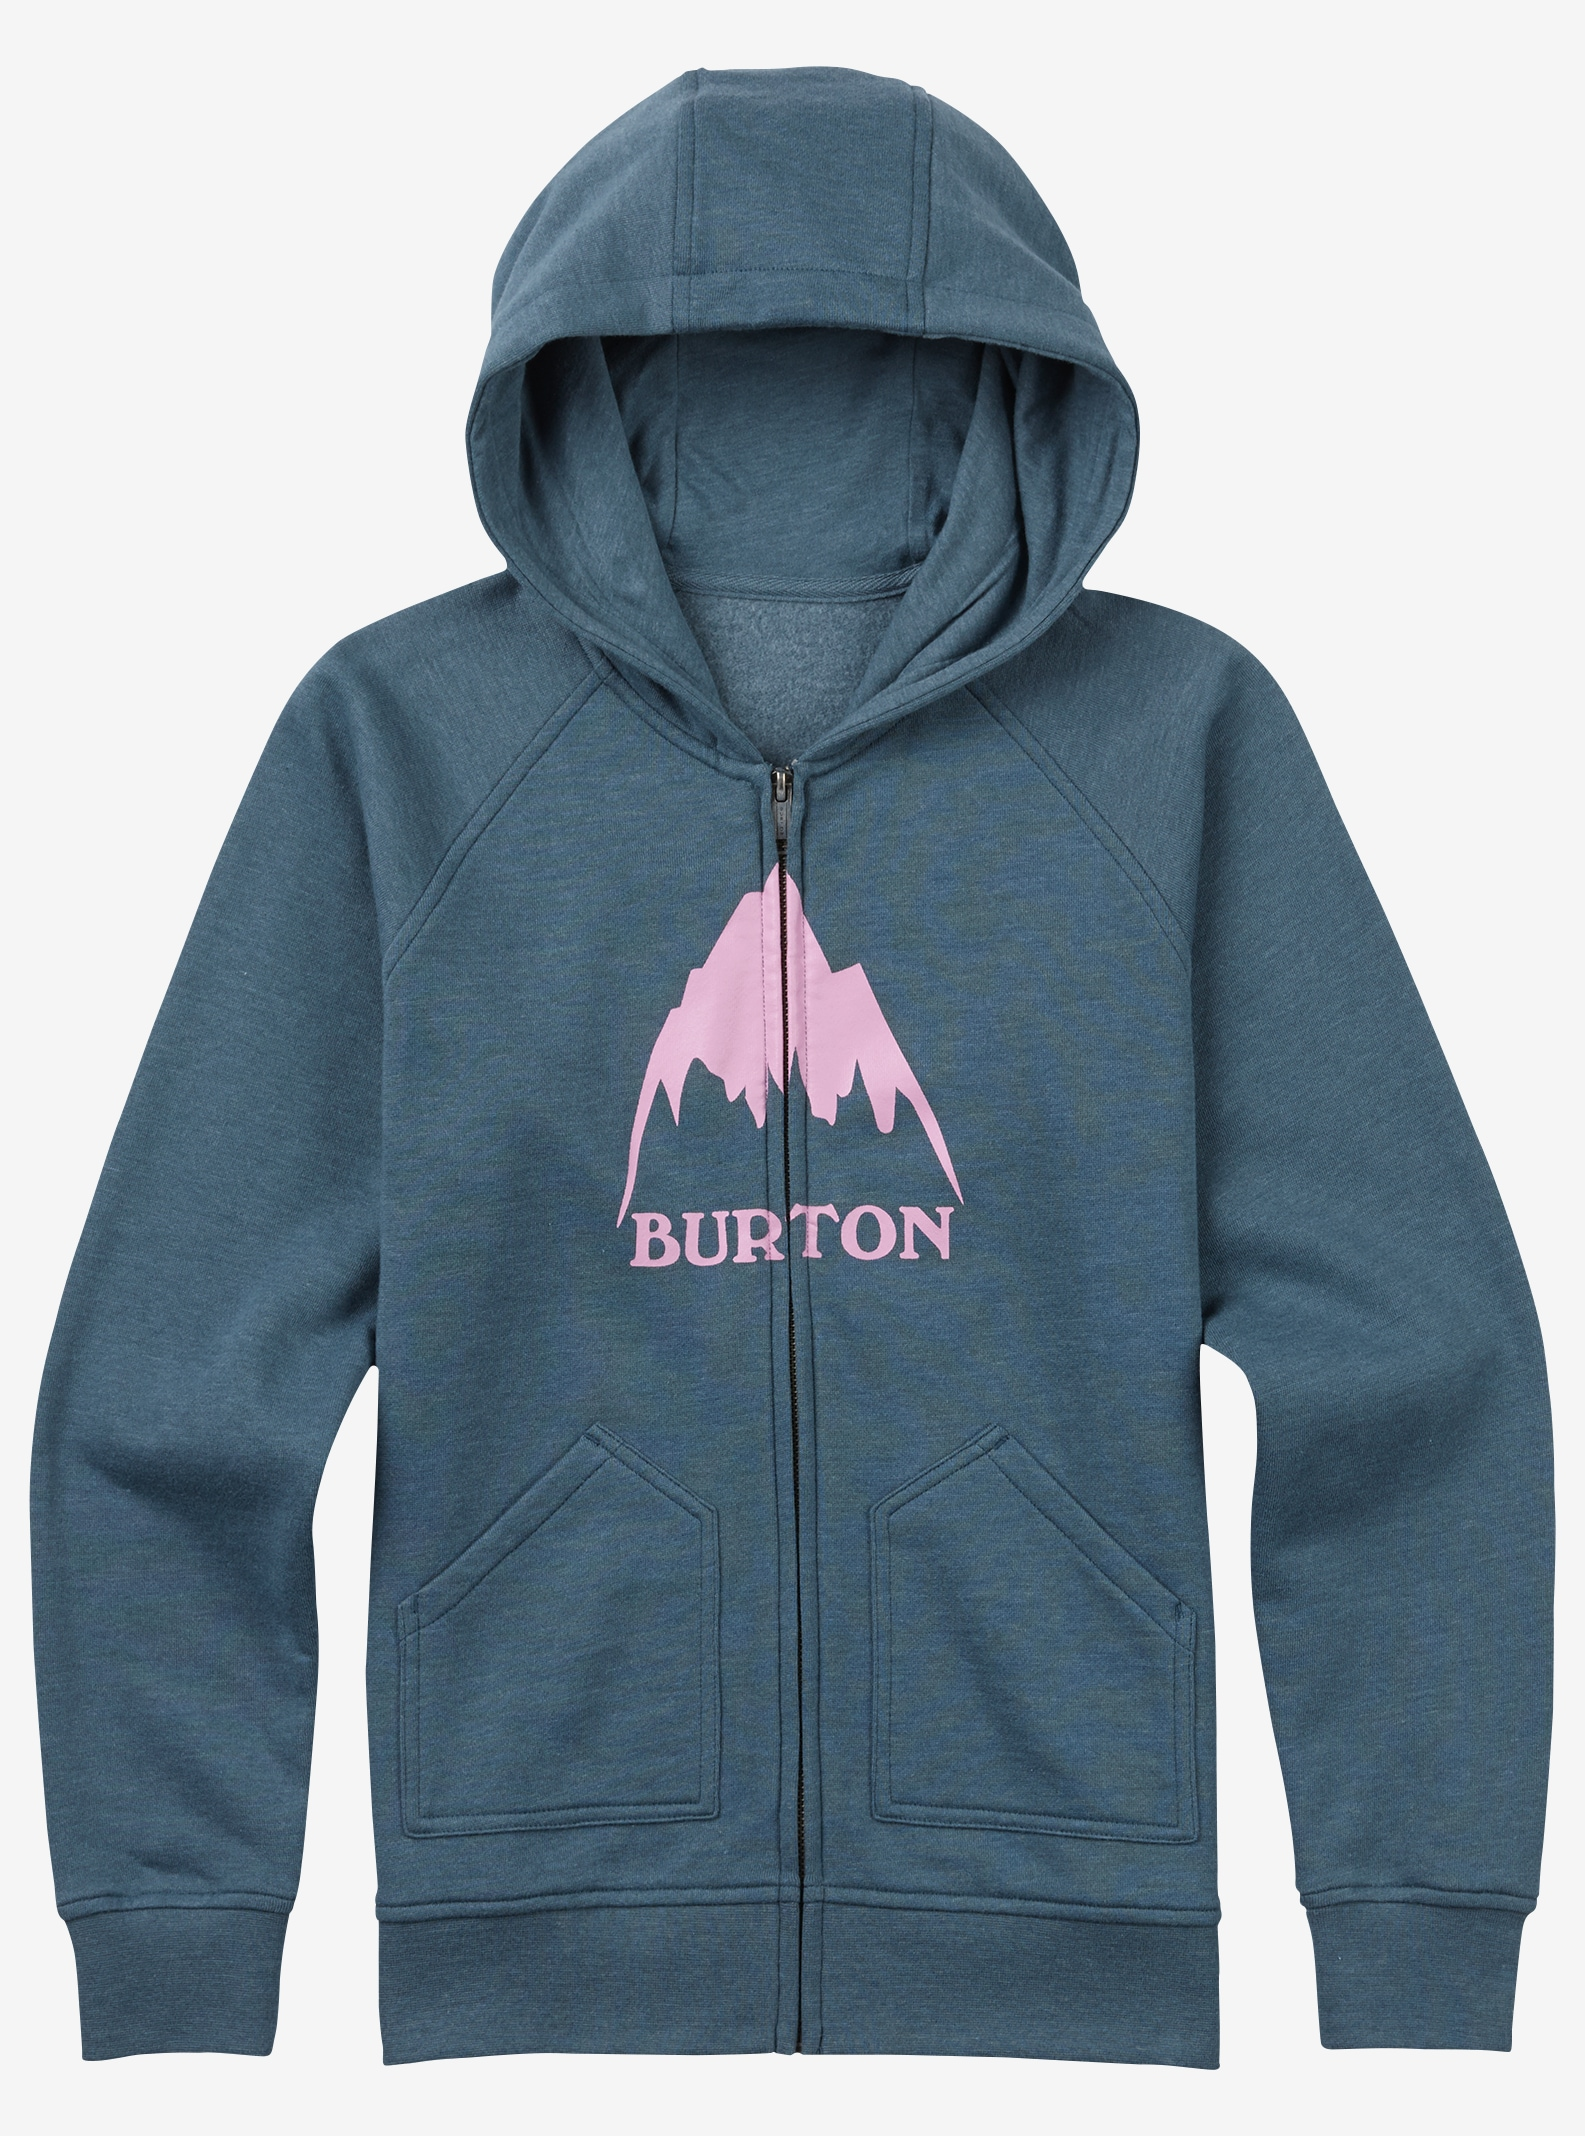 Girls' Burton Mountain Full‑Zip Hoodie shown in LA Sky